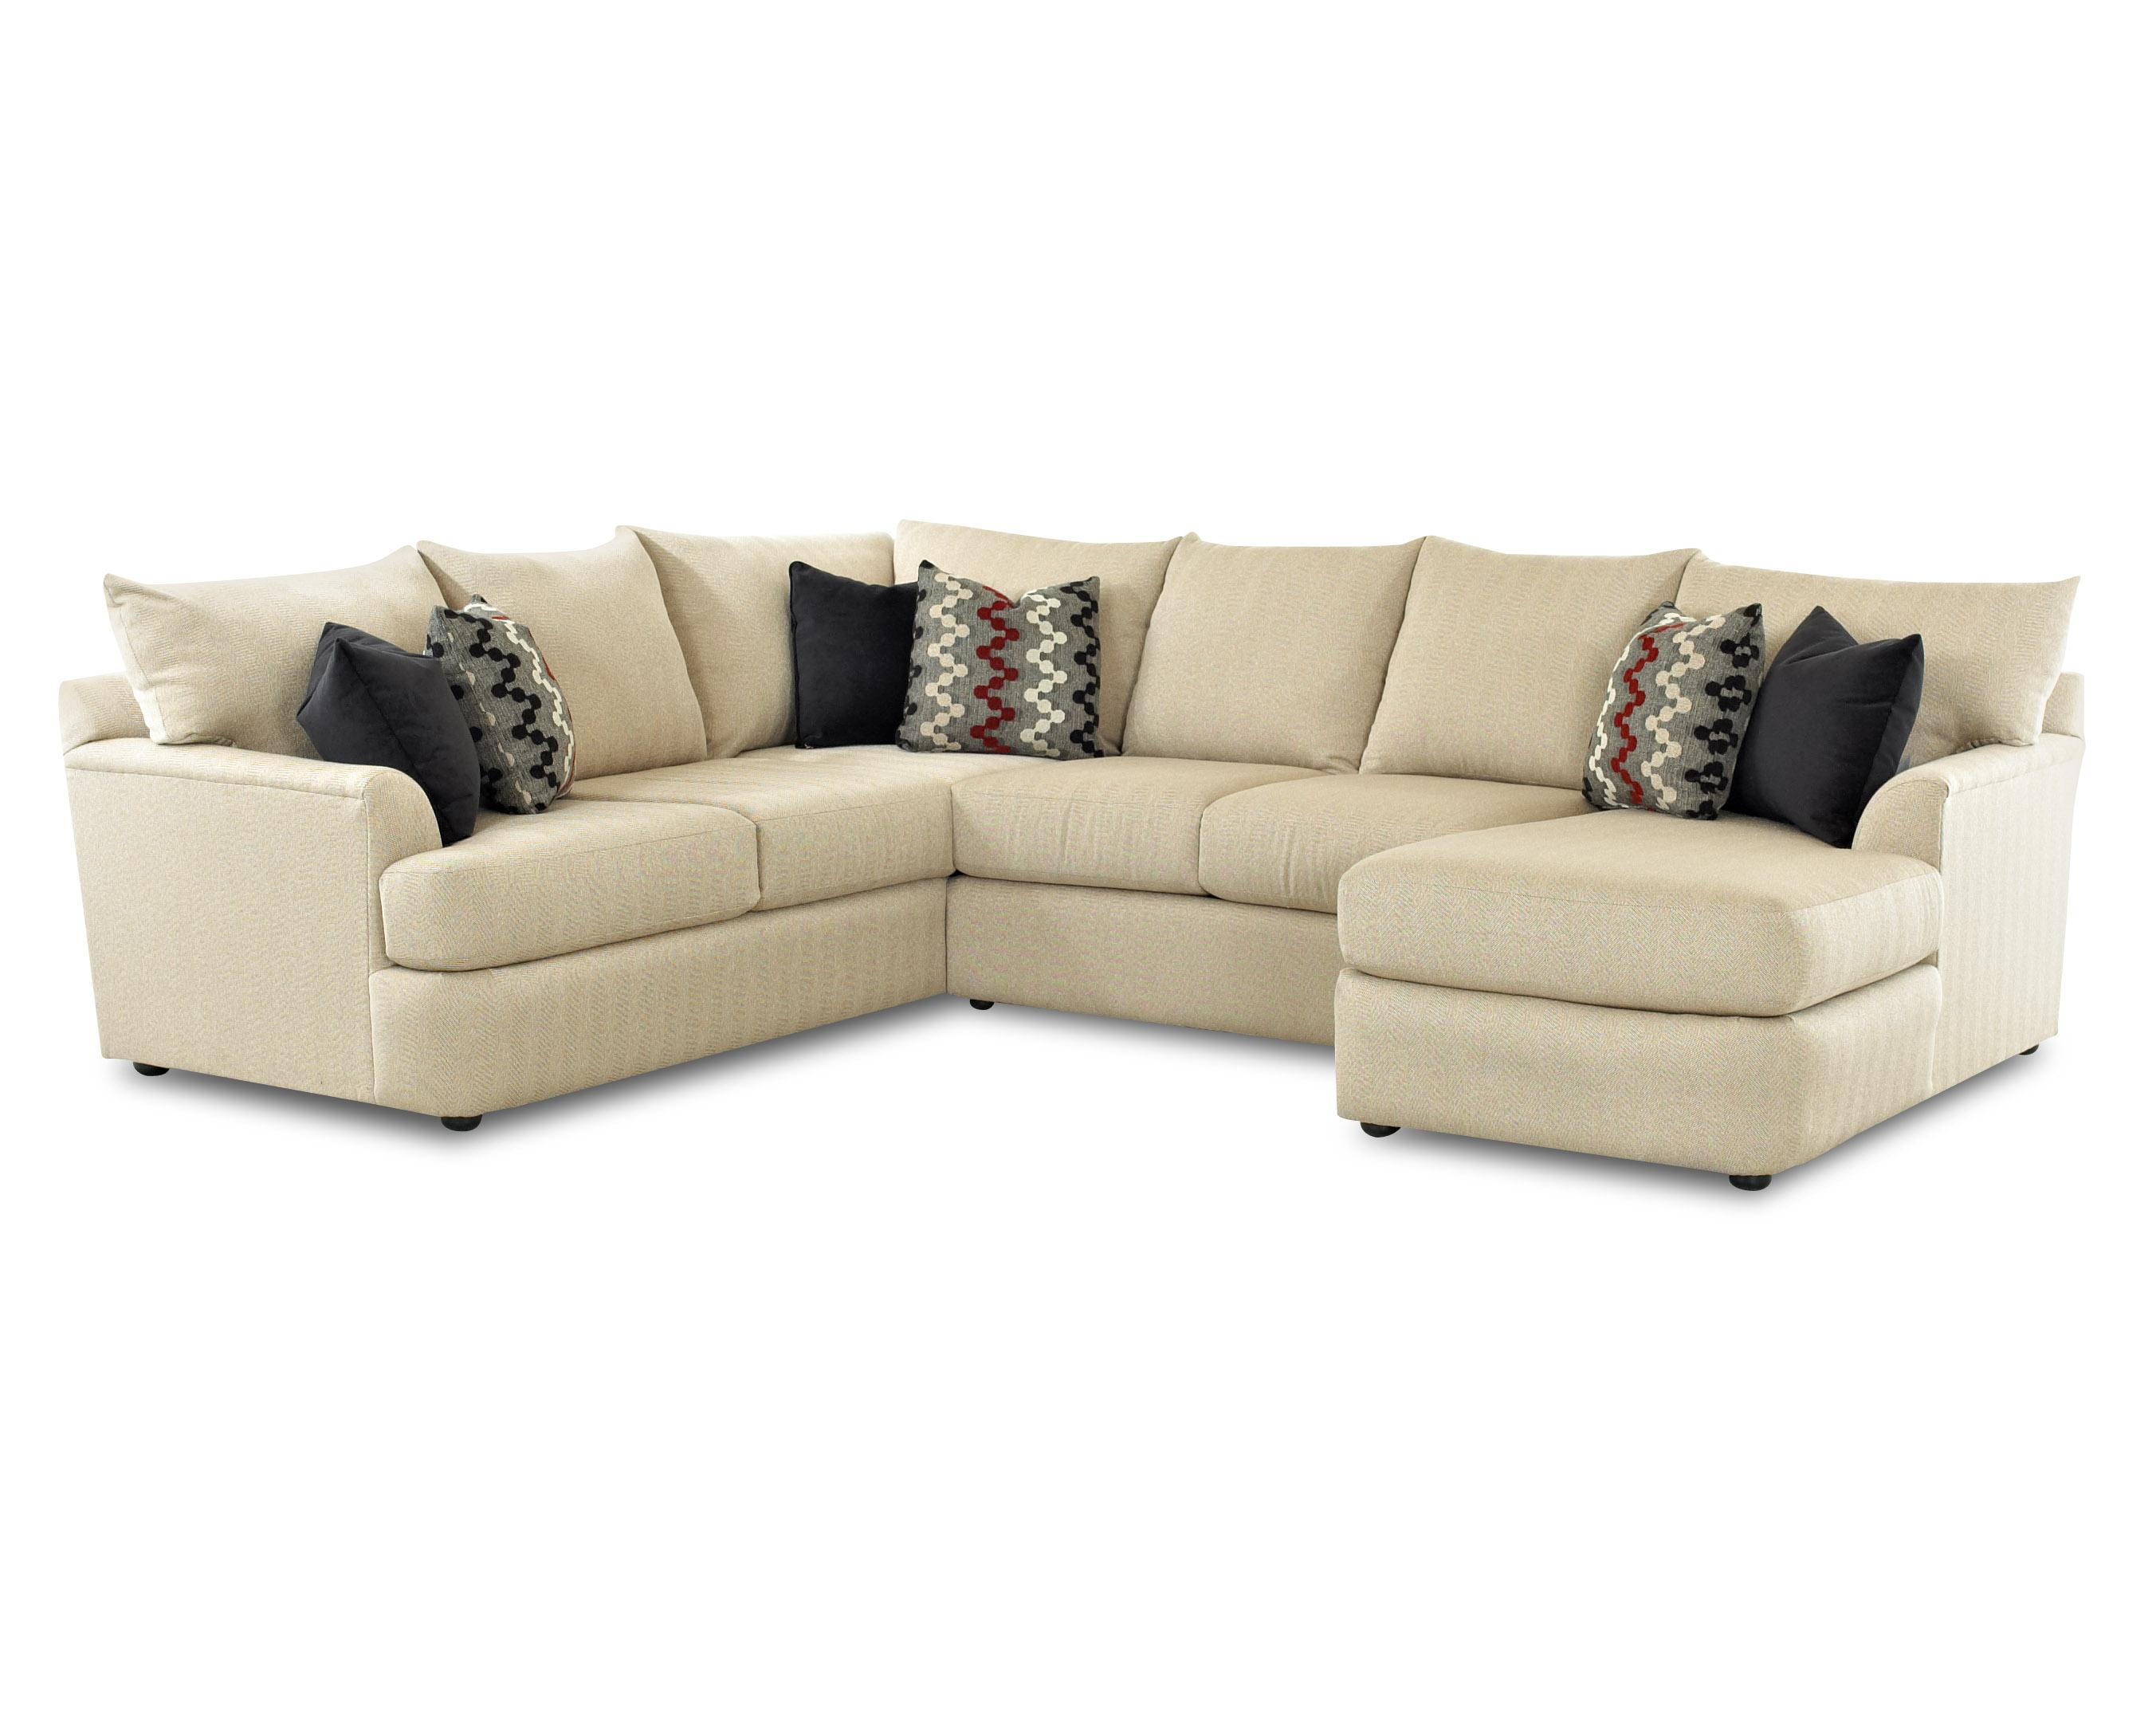 Sectional sofa with right arm chaise lounger by klaussner for One arm sofa chaise